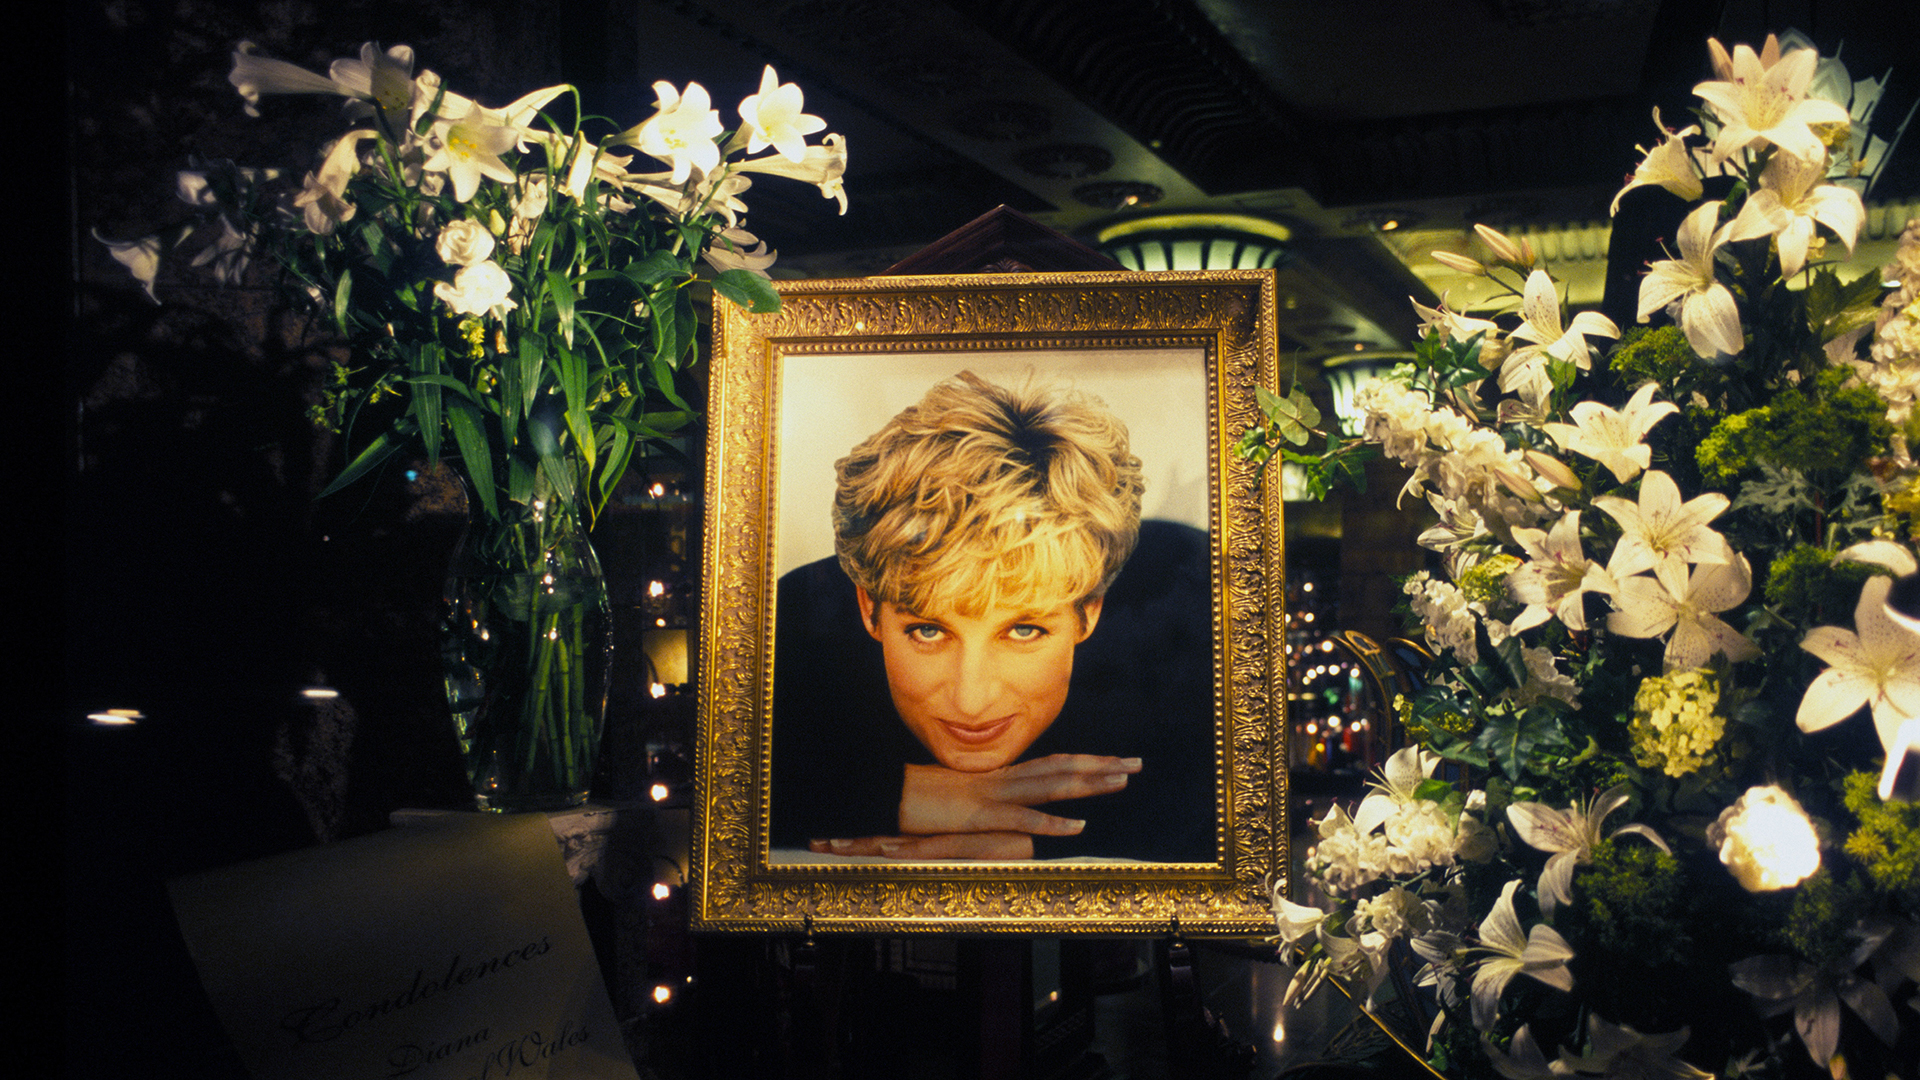 August 31, 1997: Princess Diana Died in a Car Crash